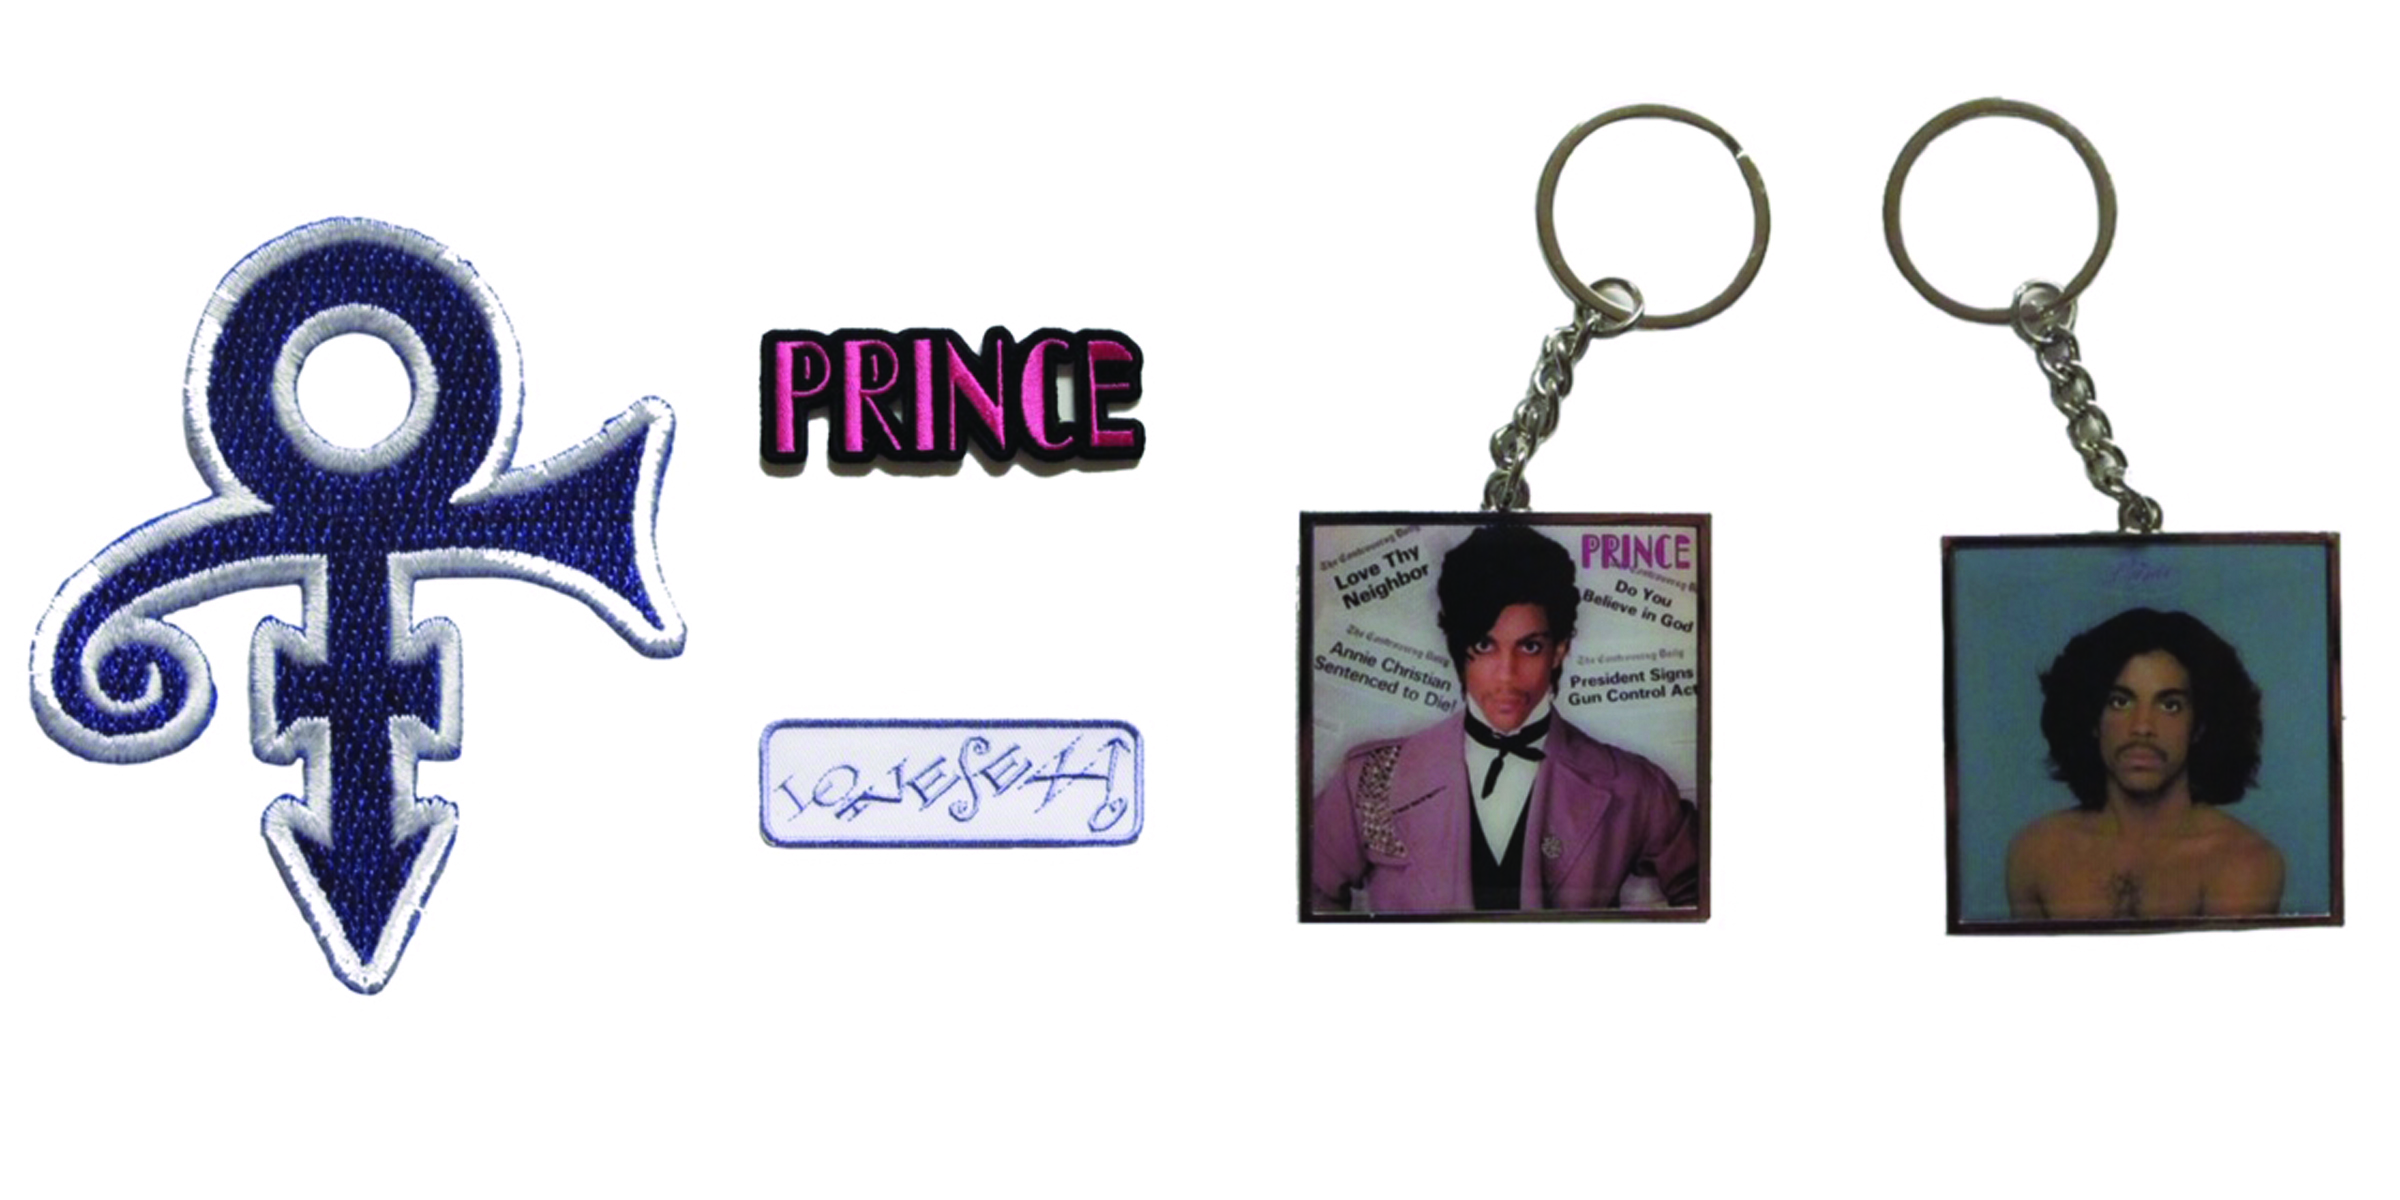 Prince Patches and Keychains